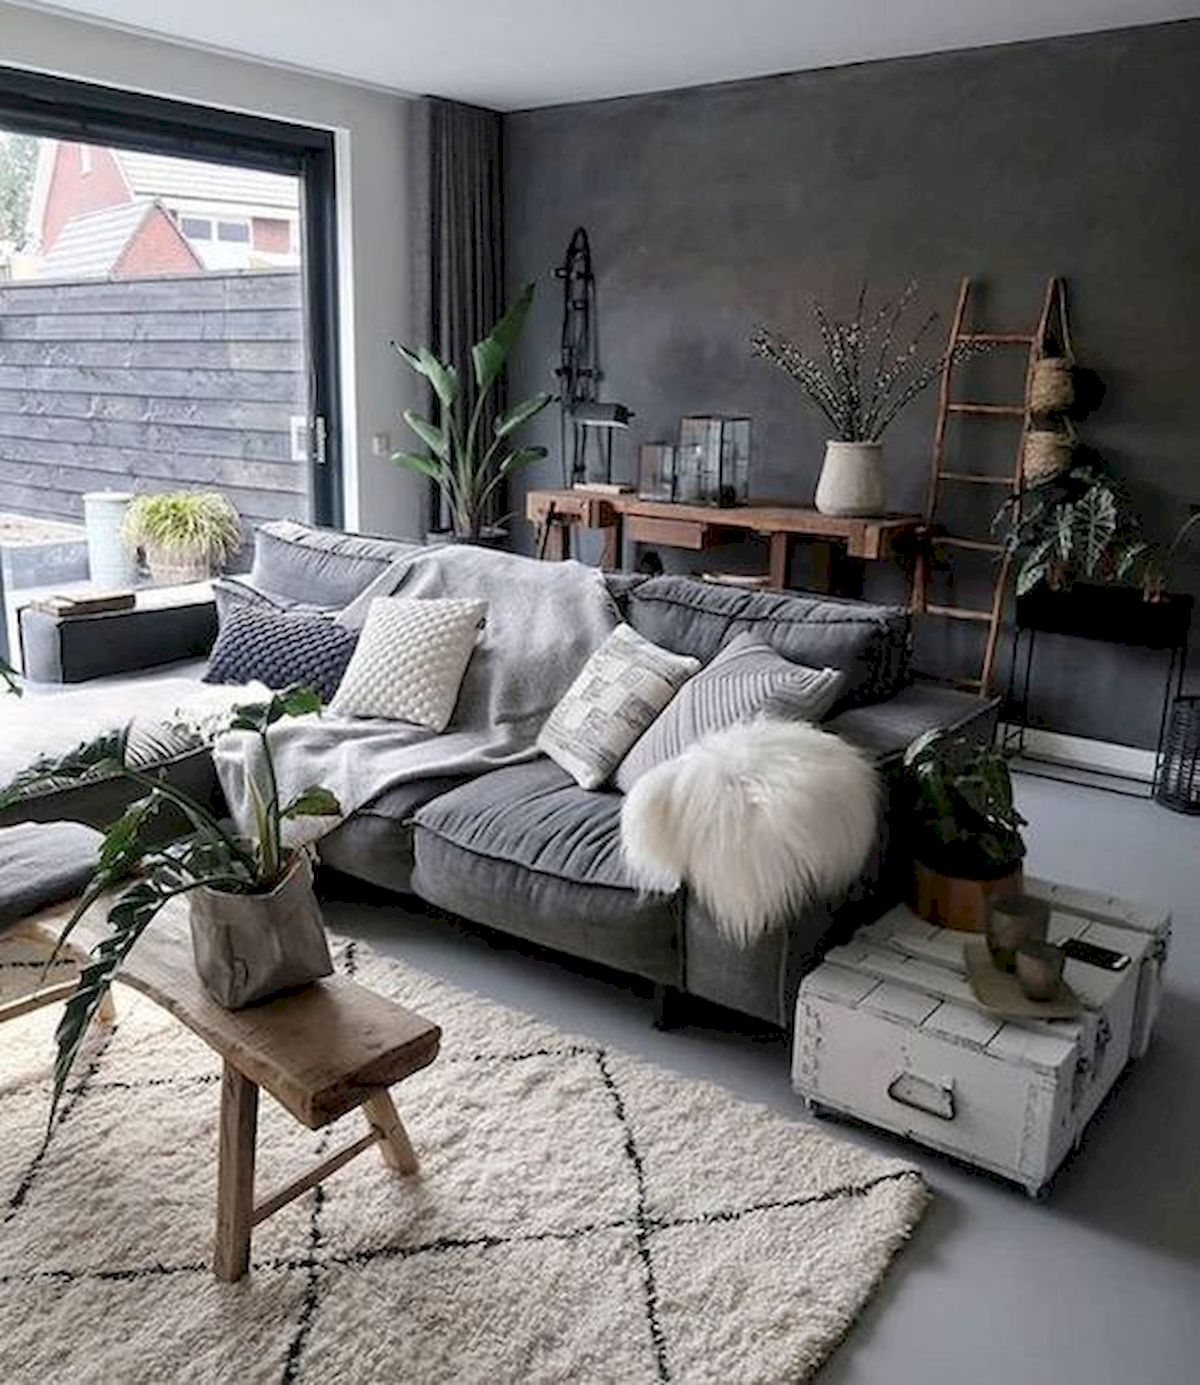 30 Awesome Small Apartment Design and Decor Ideas With Farmhouse Styles (18)